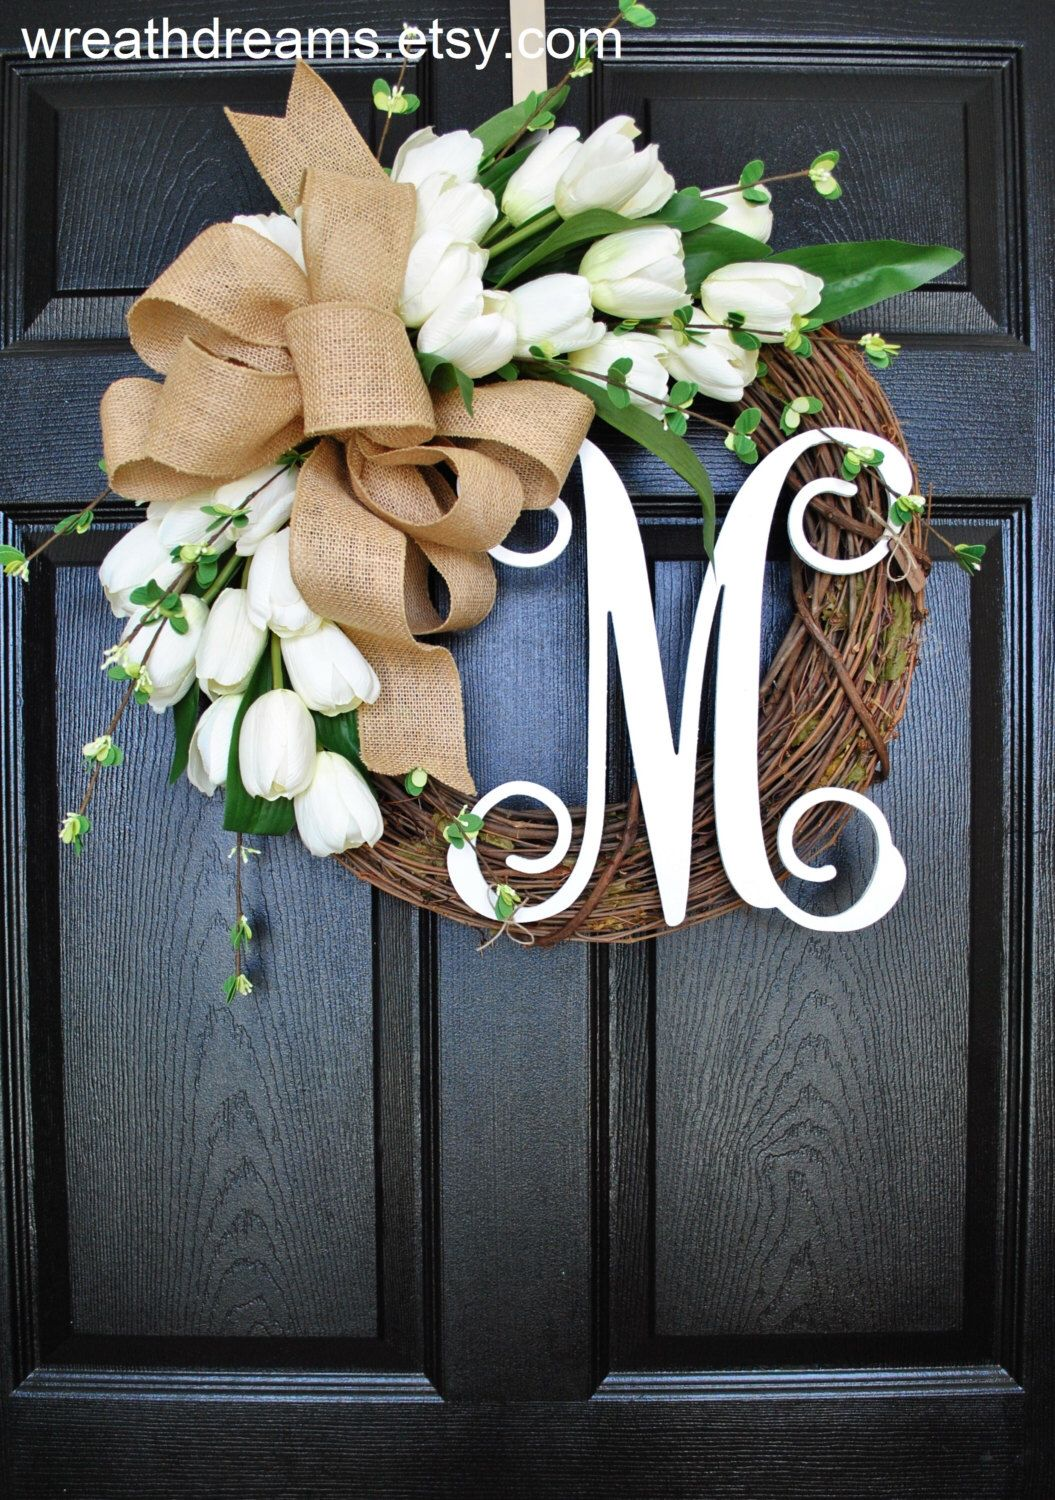 A Beautiful Refreshing Year Round Wreath Decorated With White Tulips Complemented By An Over Sized Natural Burlap Bow